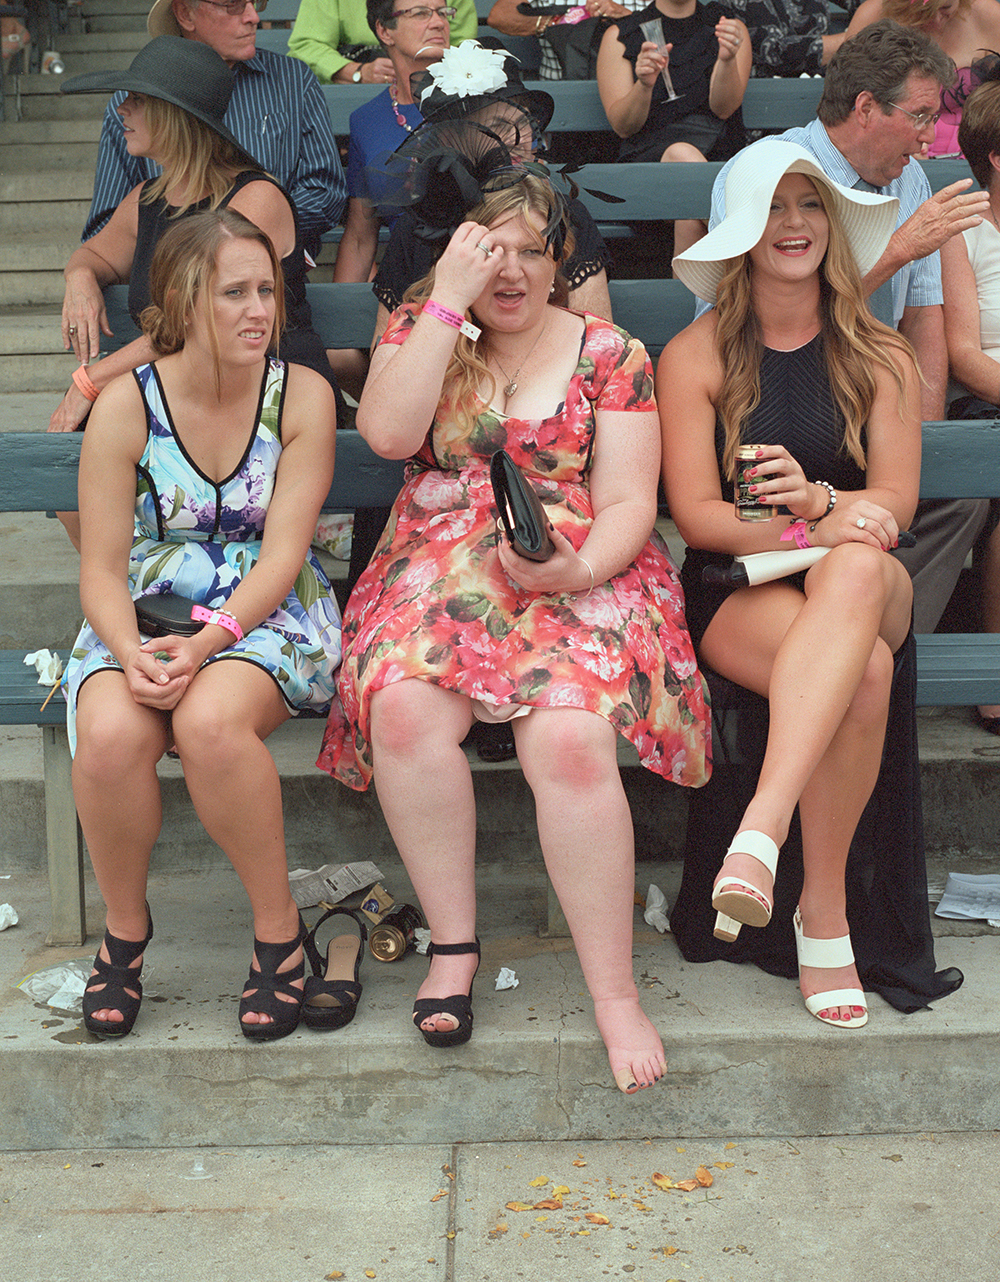 Sore foot; Albury Cup, Albury, NSW; 2014